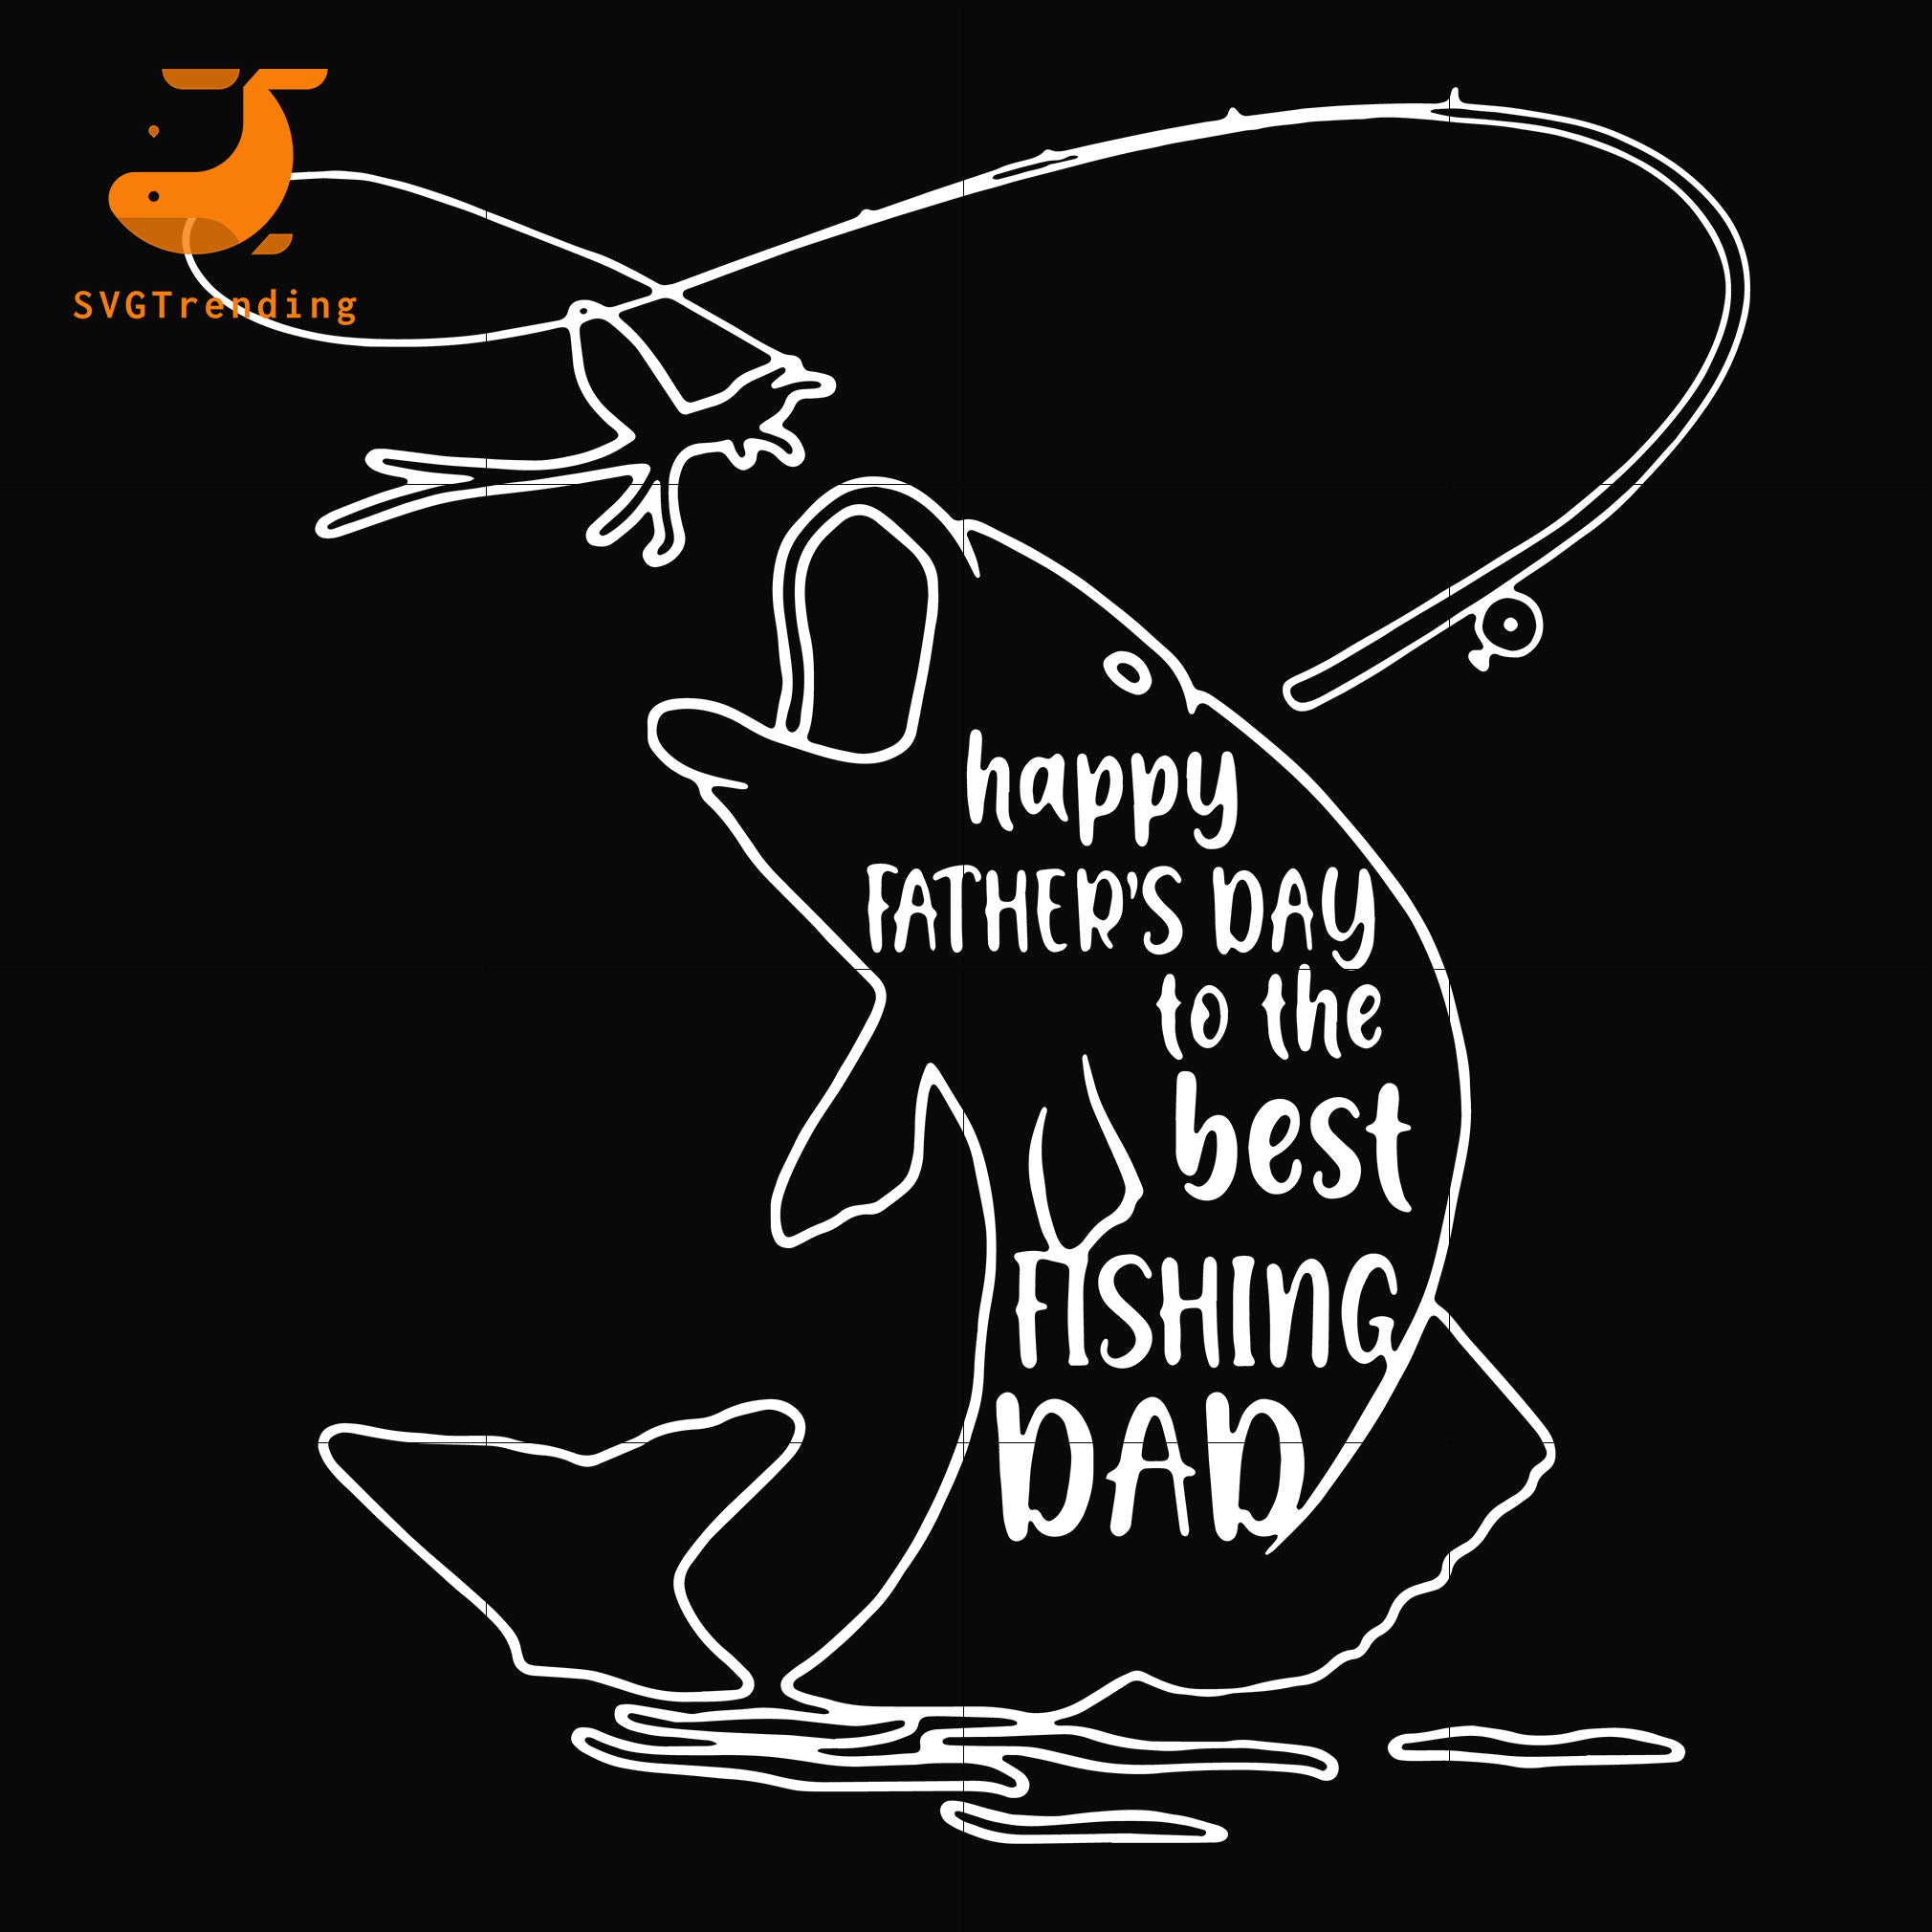 Download Happy Father S Day To The Best Fishing Ever Svg Png Dxf Eps Digital Svgtrending